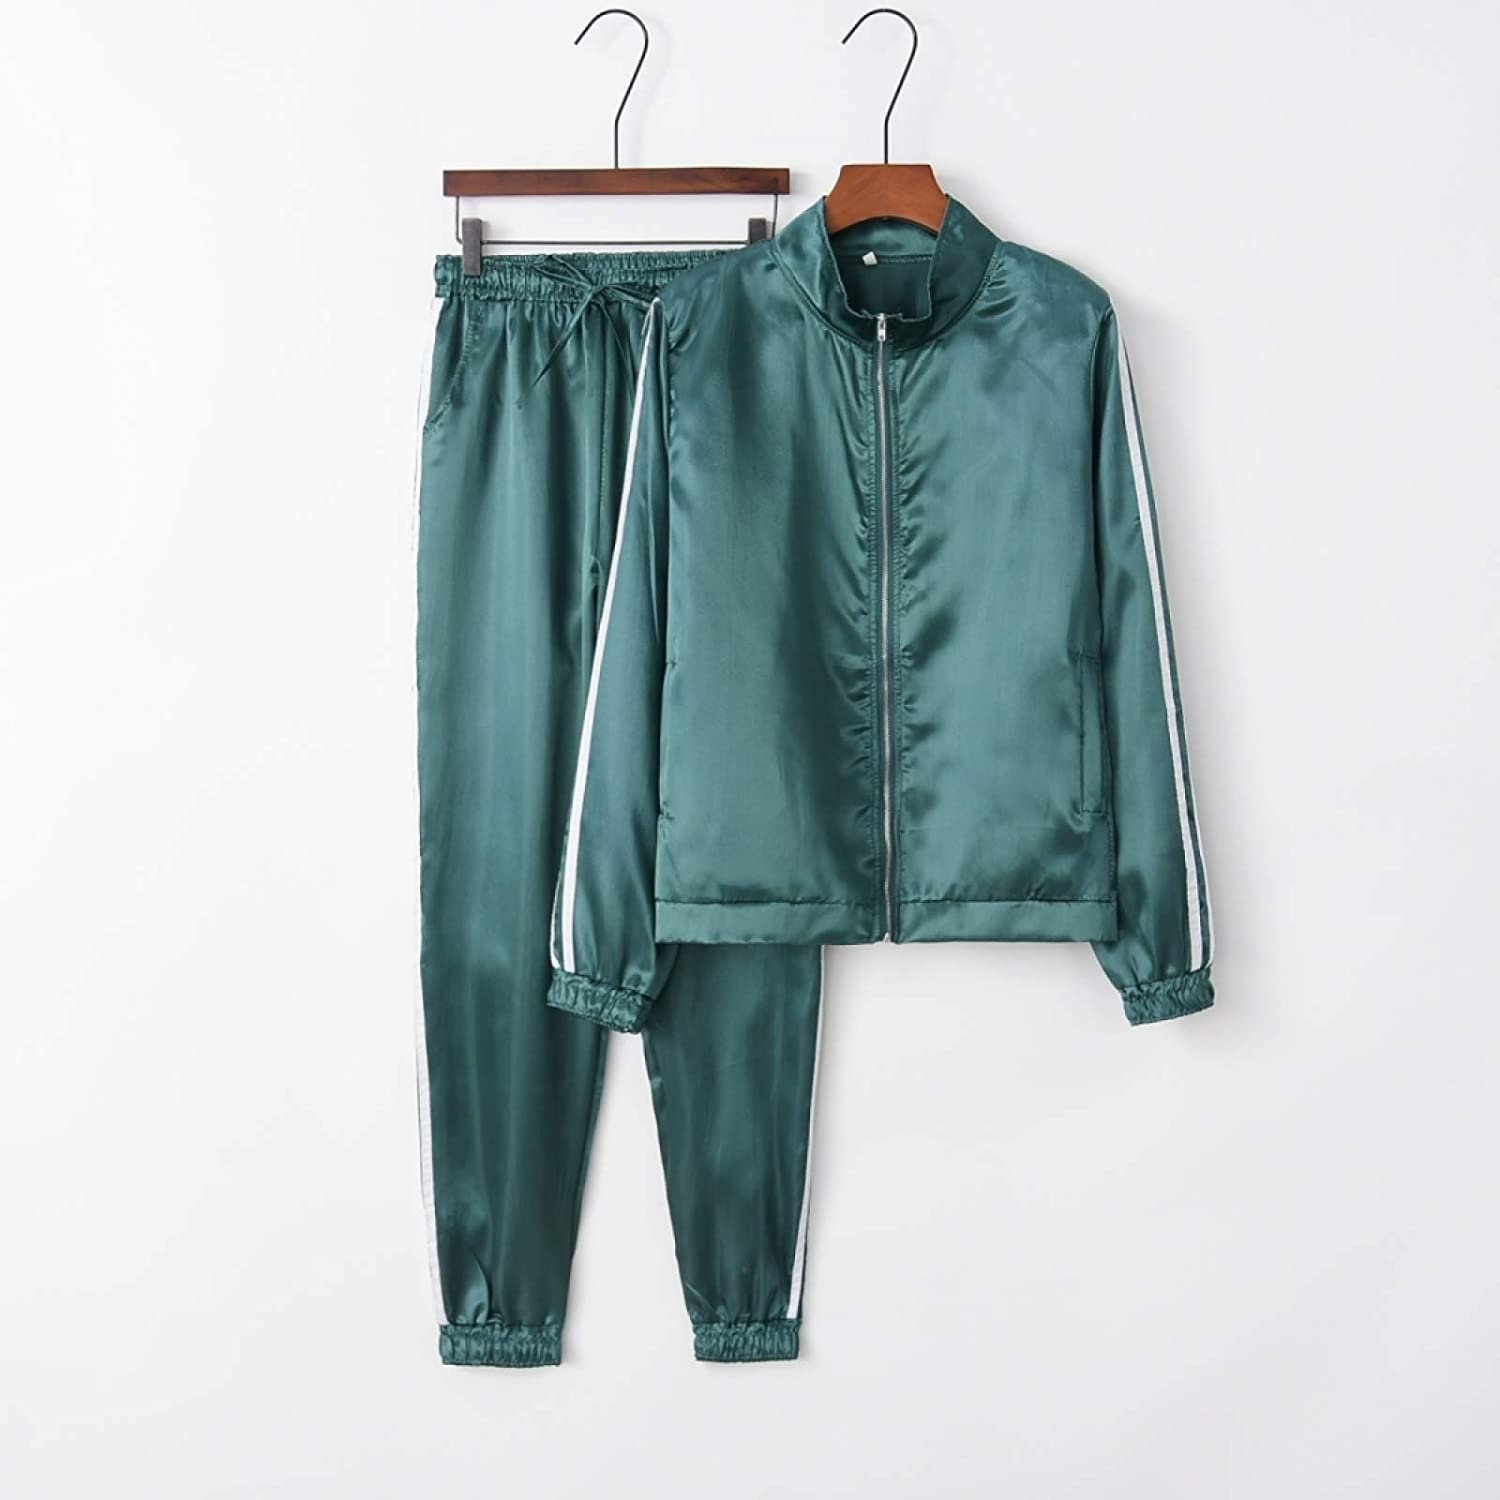 A+ZYS Long Sleeve Round Neck Casual Trousers Sports Suit (Color : Green)